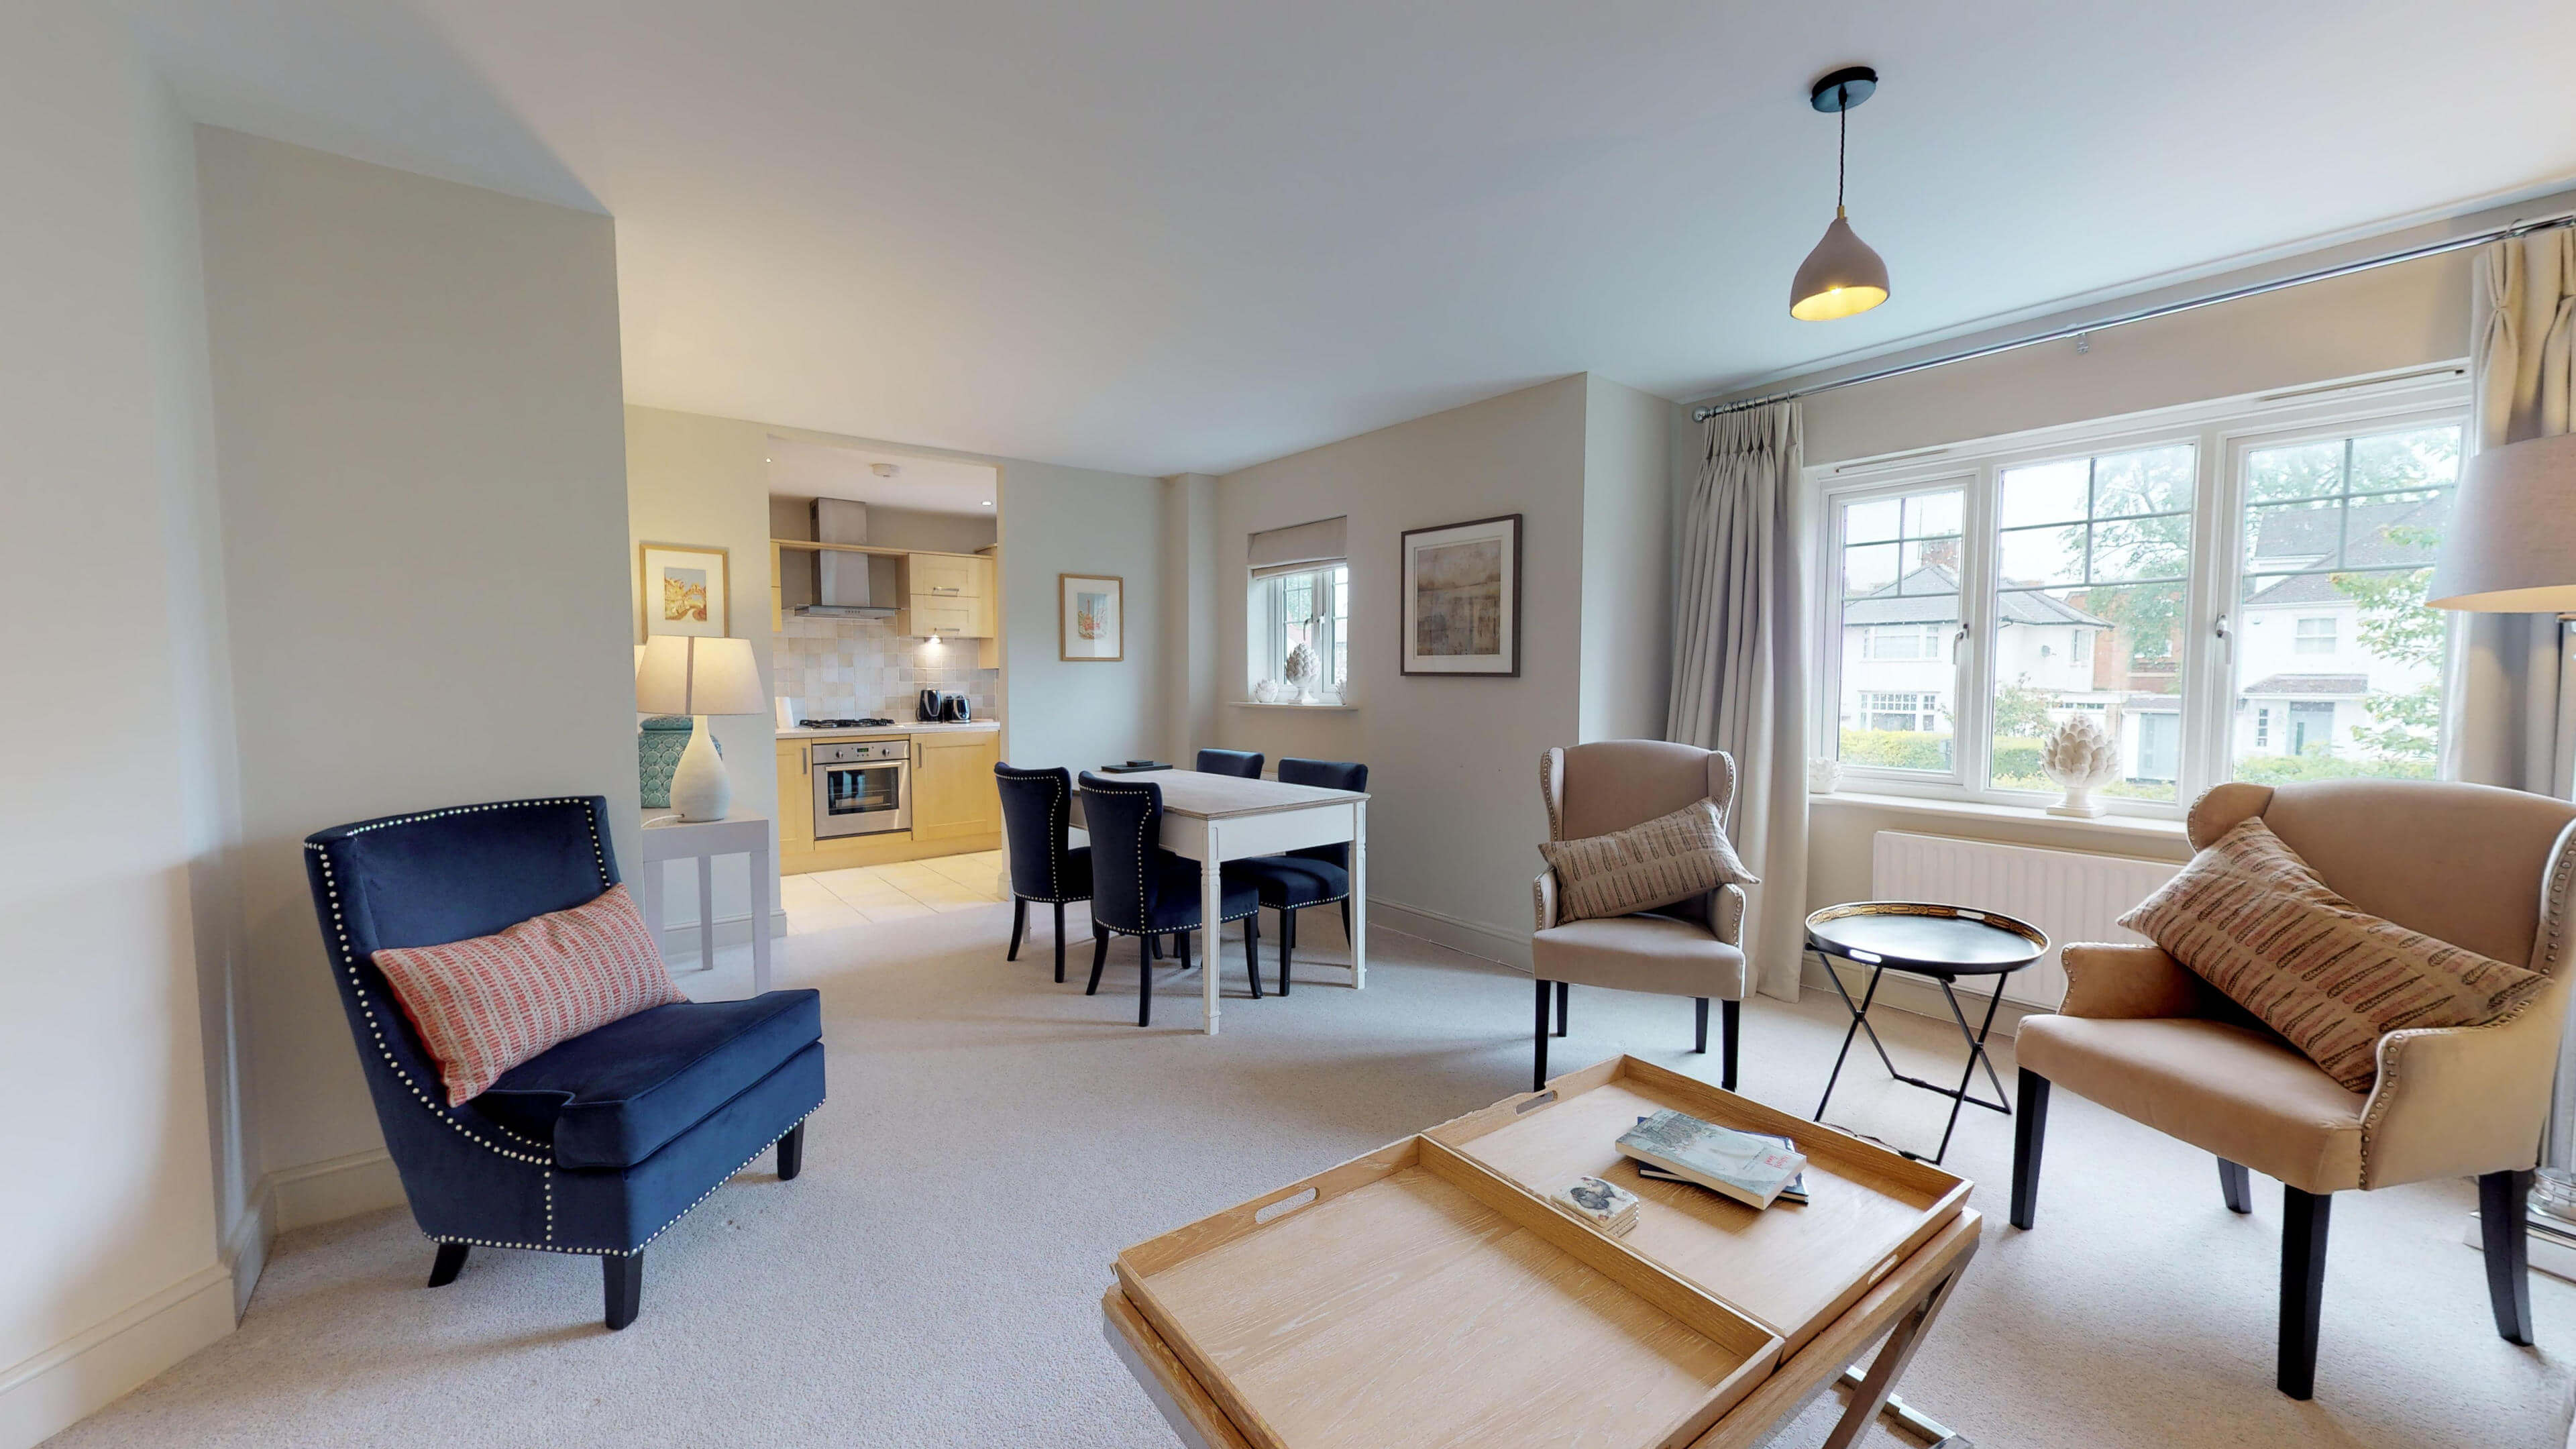 Oxford Serviced Apartments Hensington Suite Livingroom Dining Area